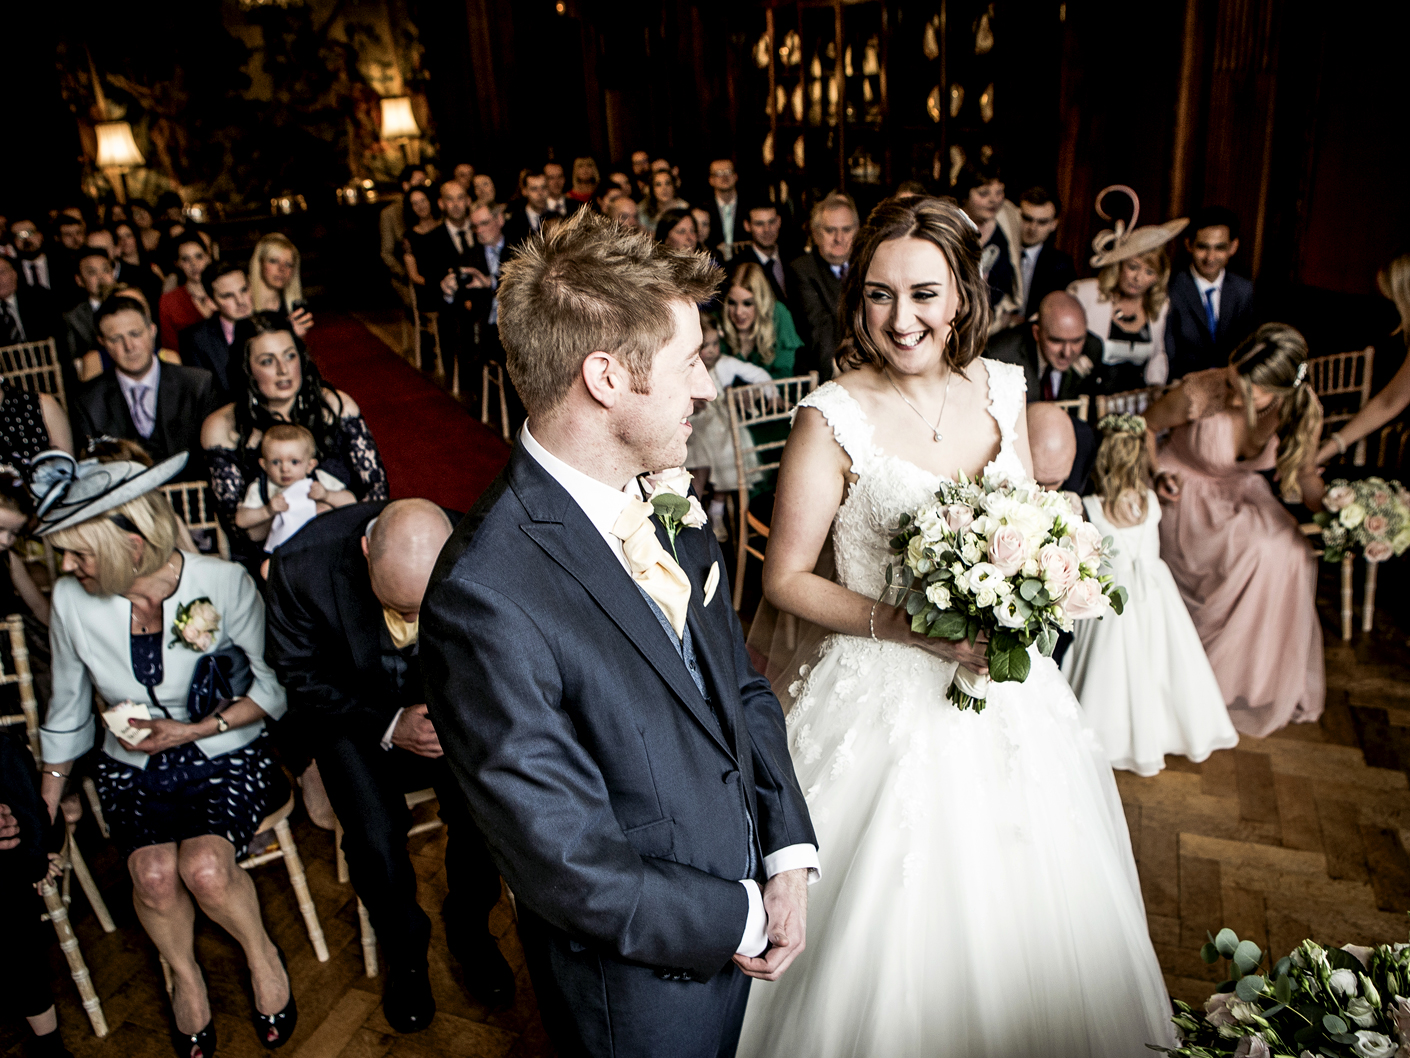 photography-of-the-wedding-vows-at-thornton-manor-wirral